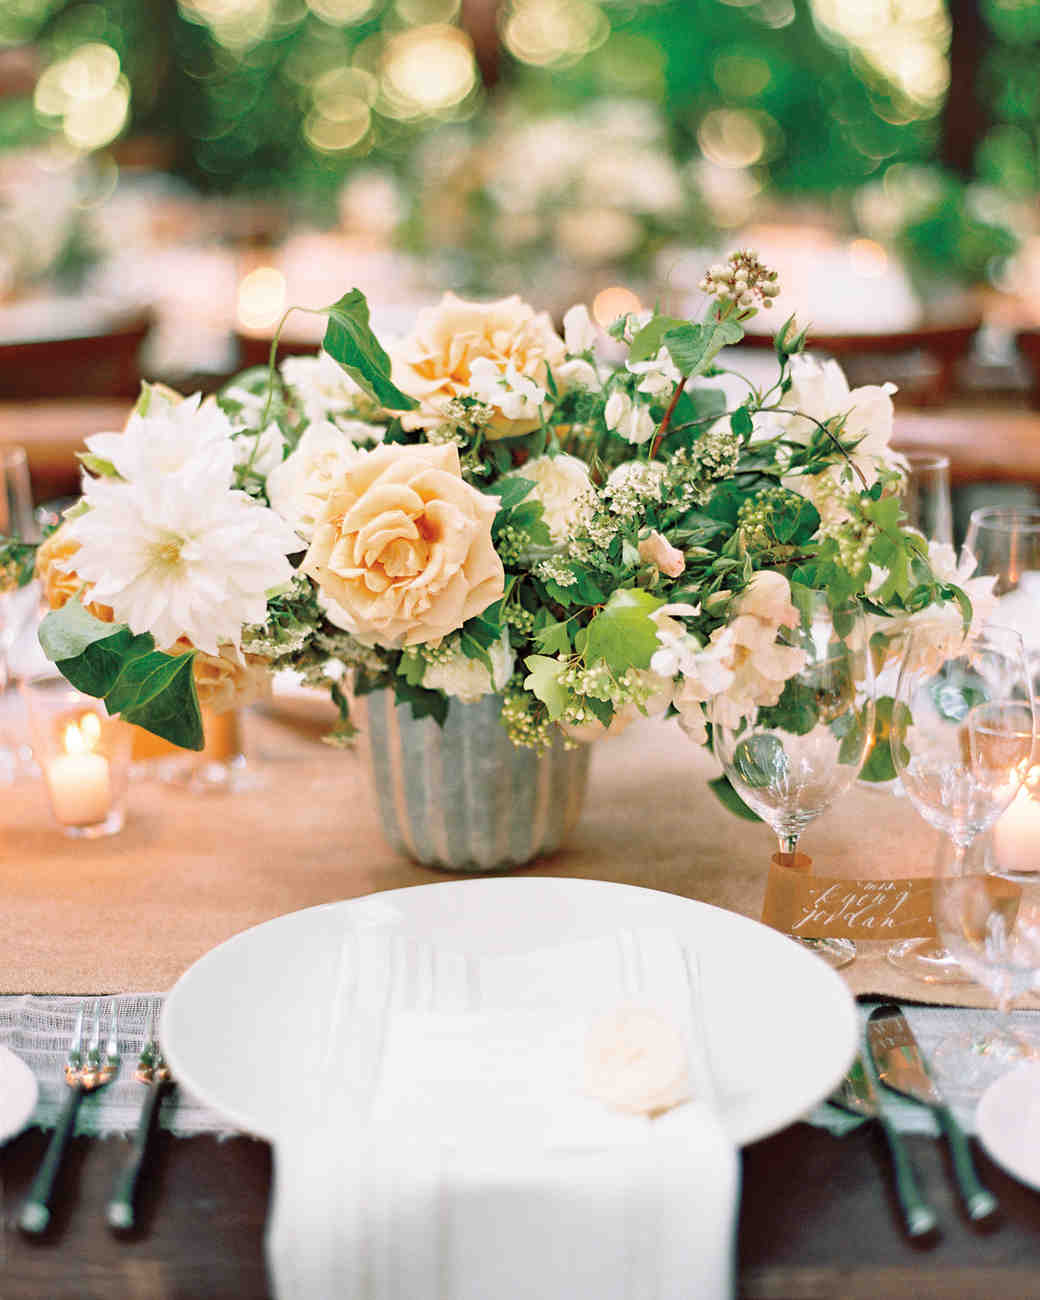 Wedding Flower Arrangements: 23 Totally Chic Vintage Centerpieces